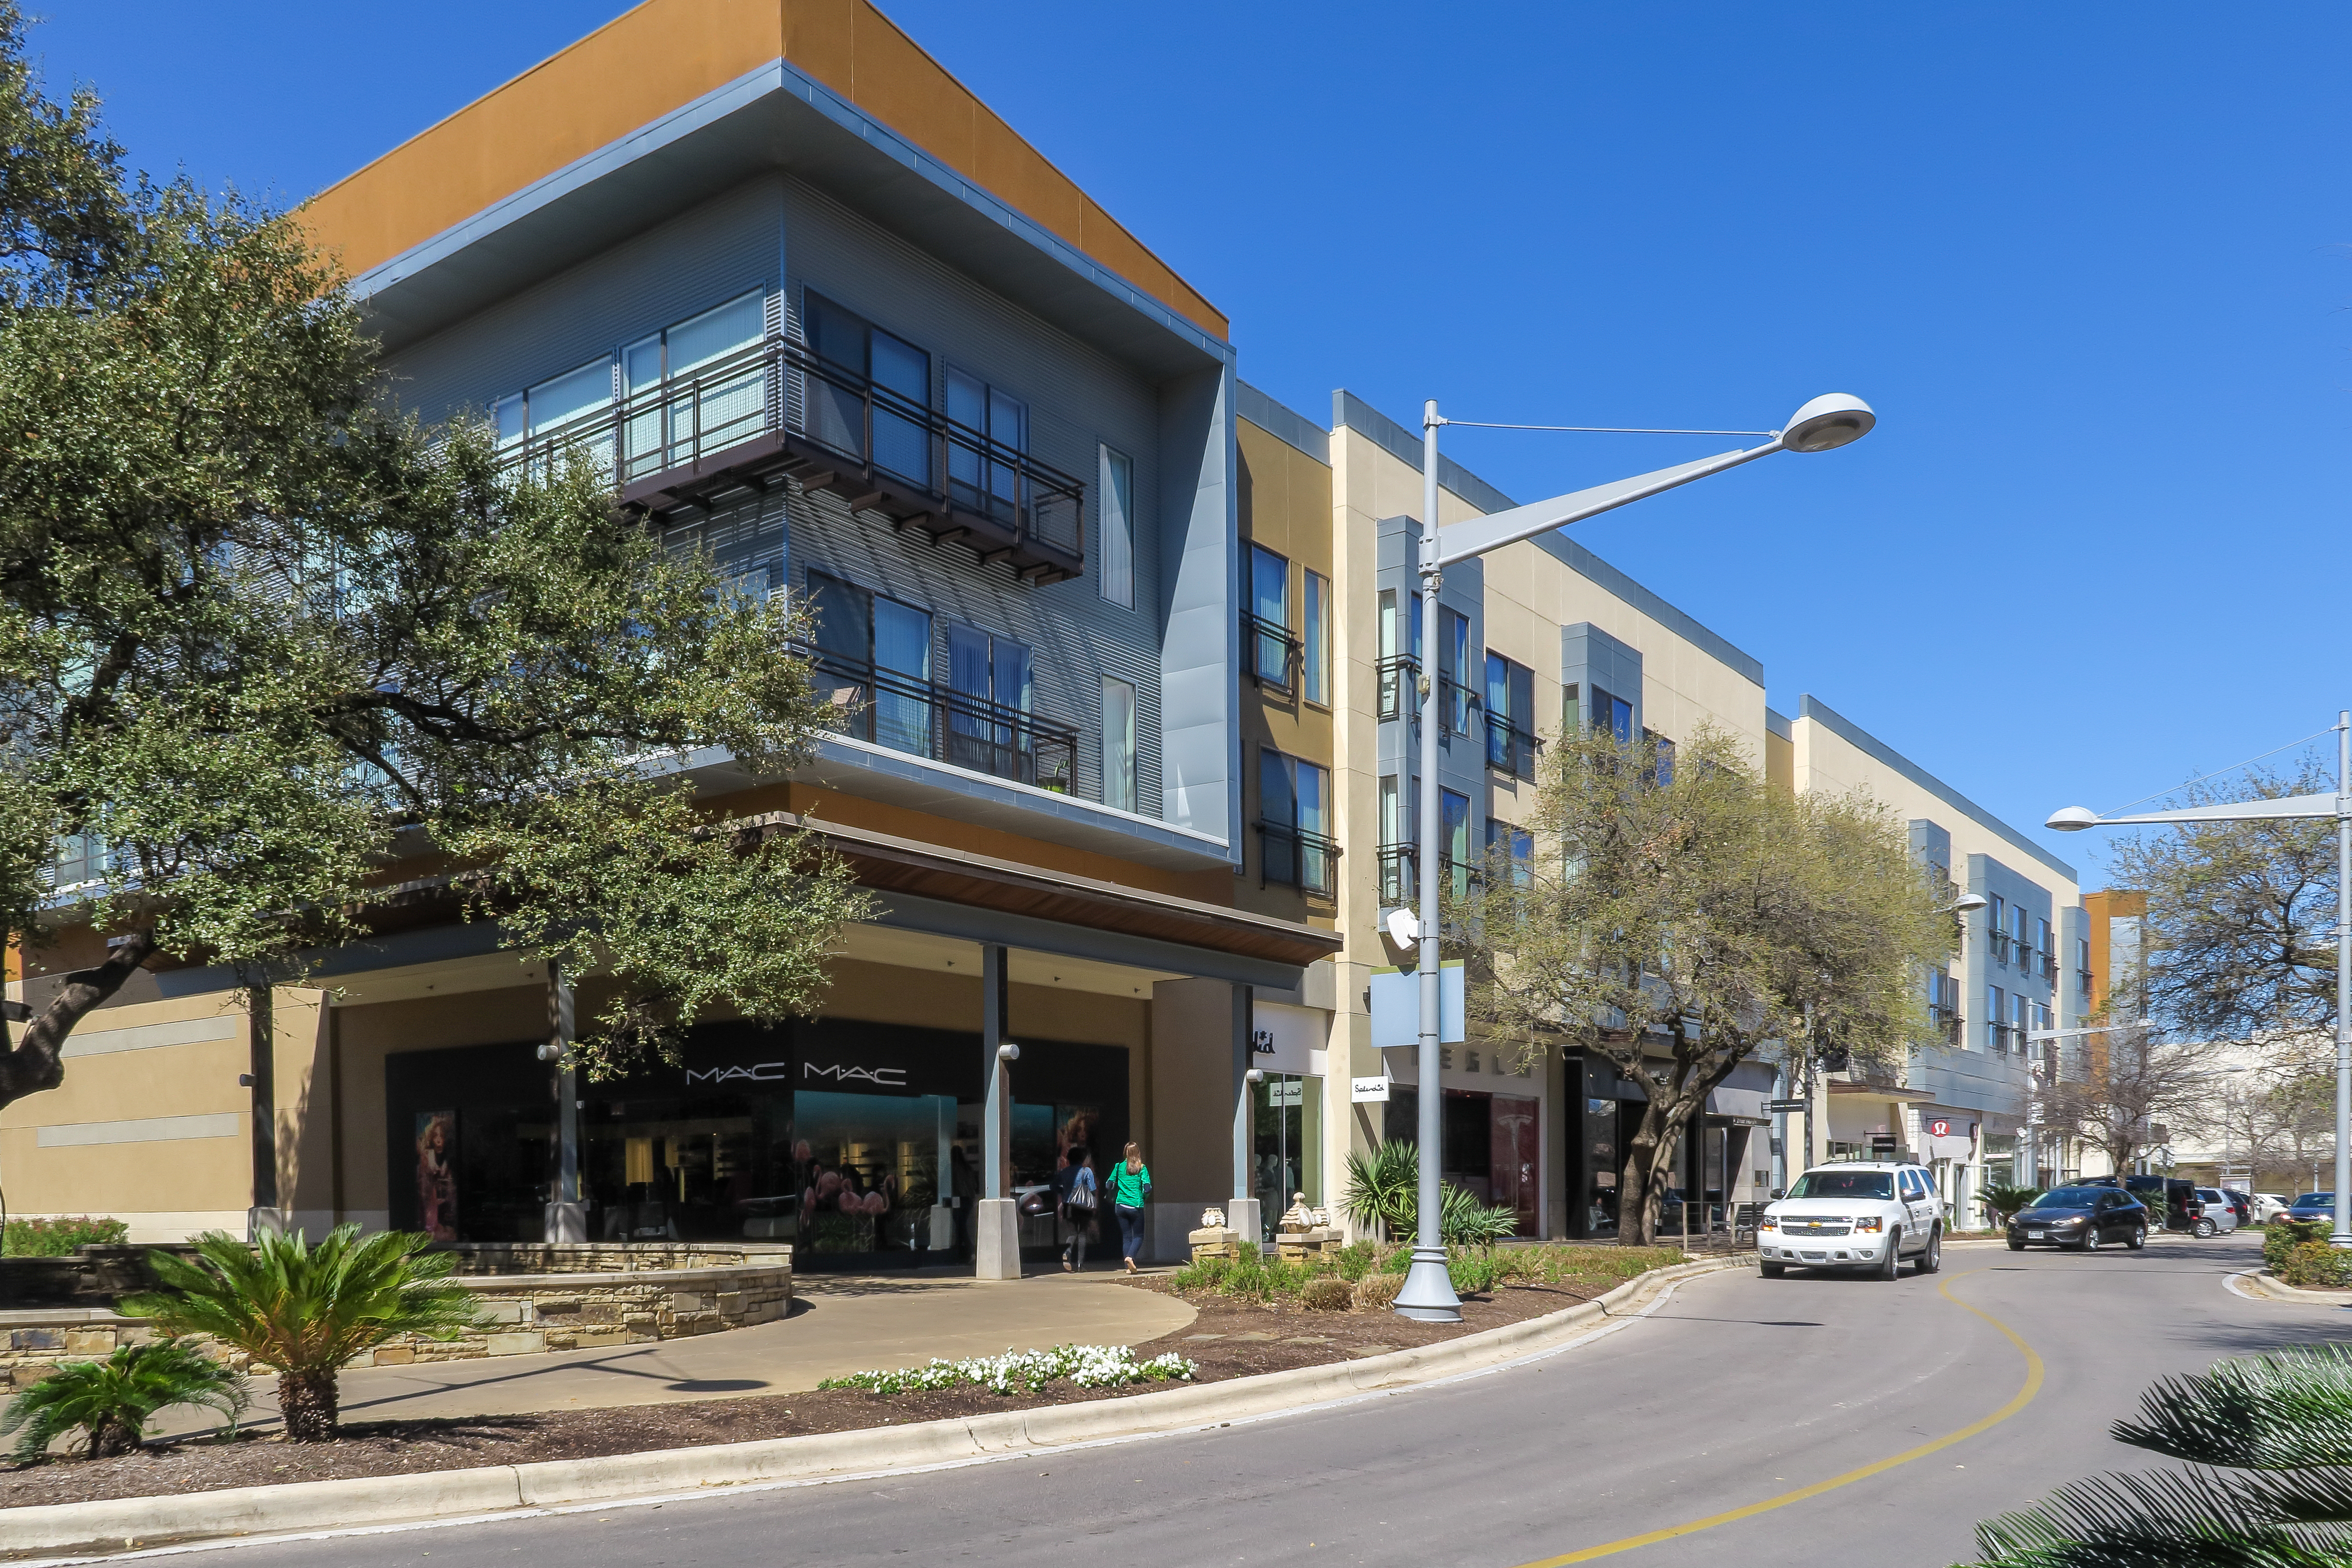 A block-long, two-story contemporary building on a curved street, part of a mixed-use development